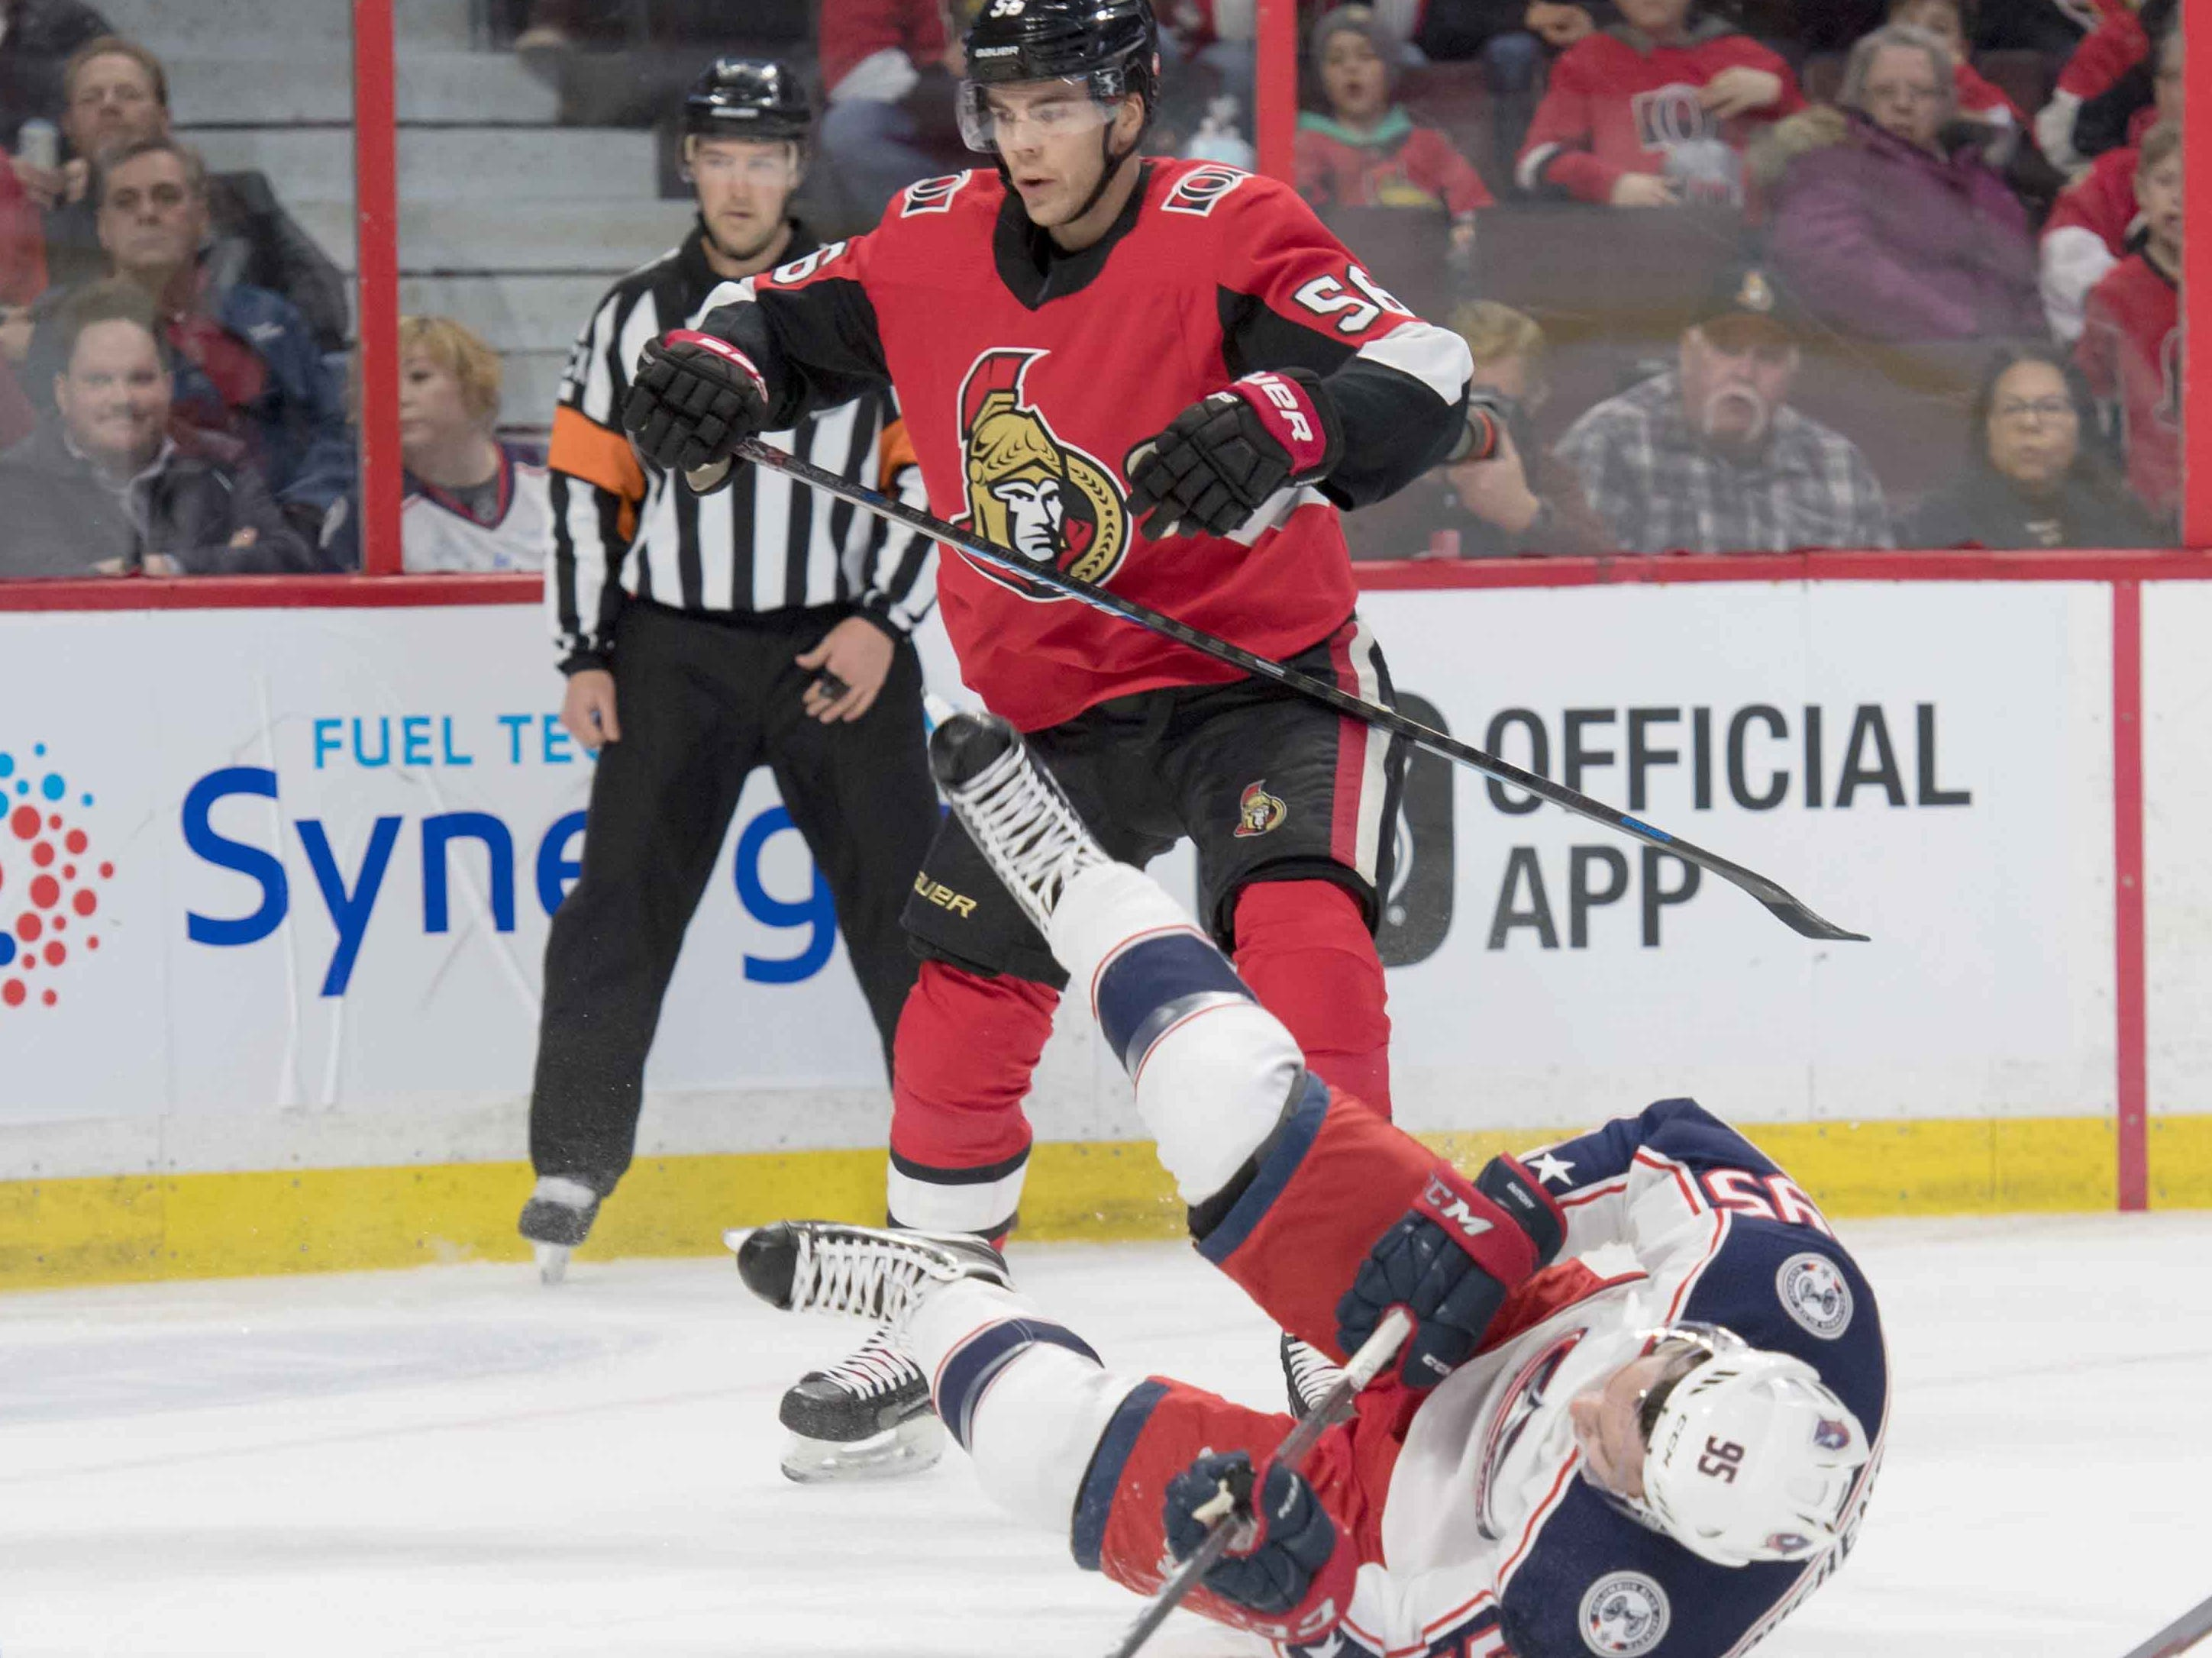 Feb. 22: Columbus Blue Jackets center Matt Duchene, traded by the Ottawa Senators earlier in the day, is spilled by former teammate Maxime Lajoie.